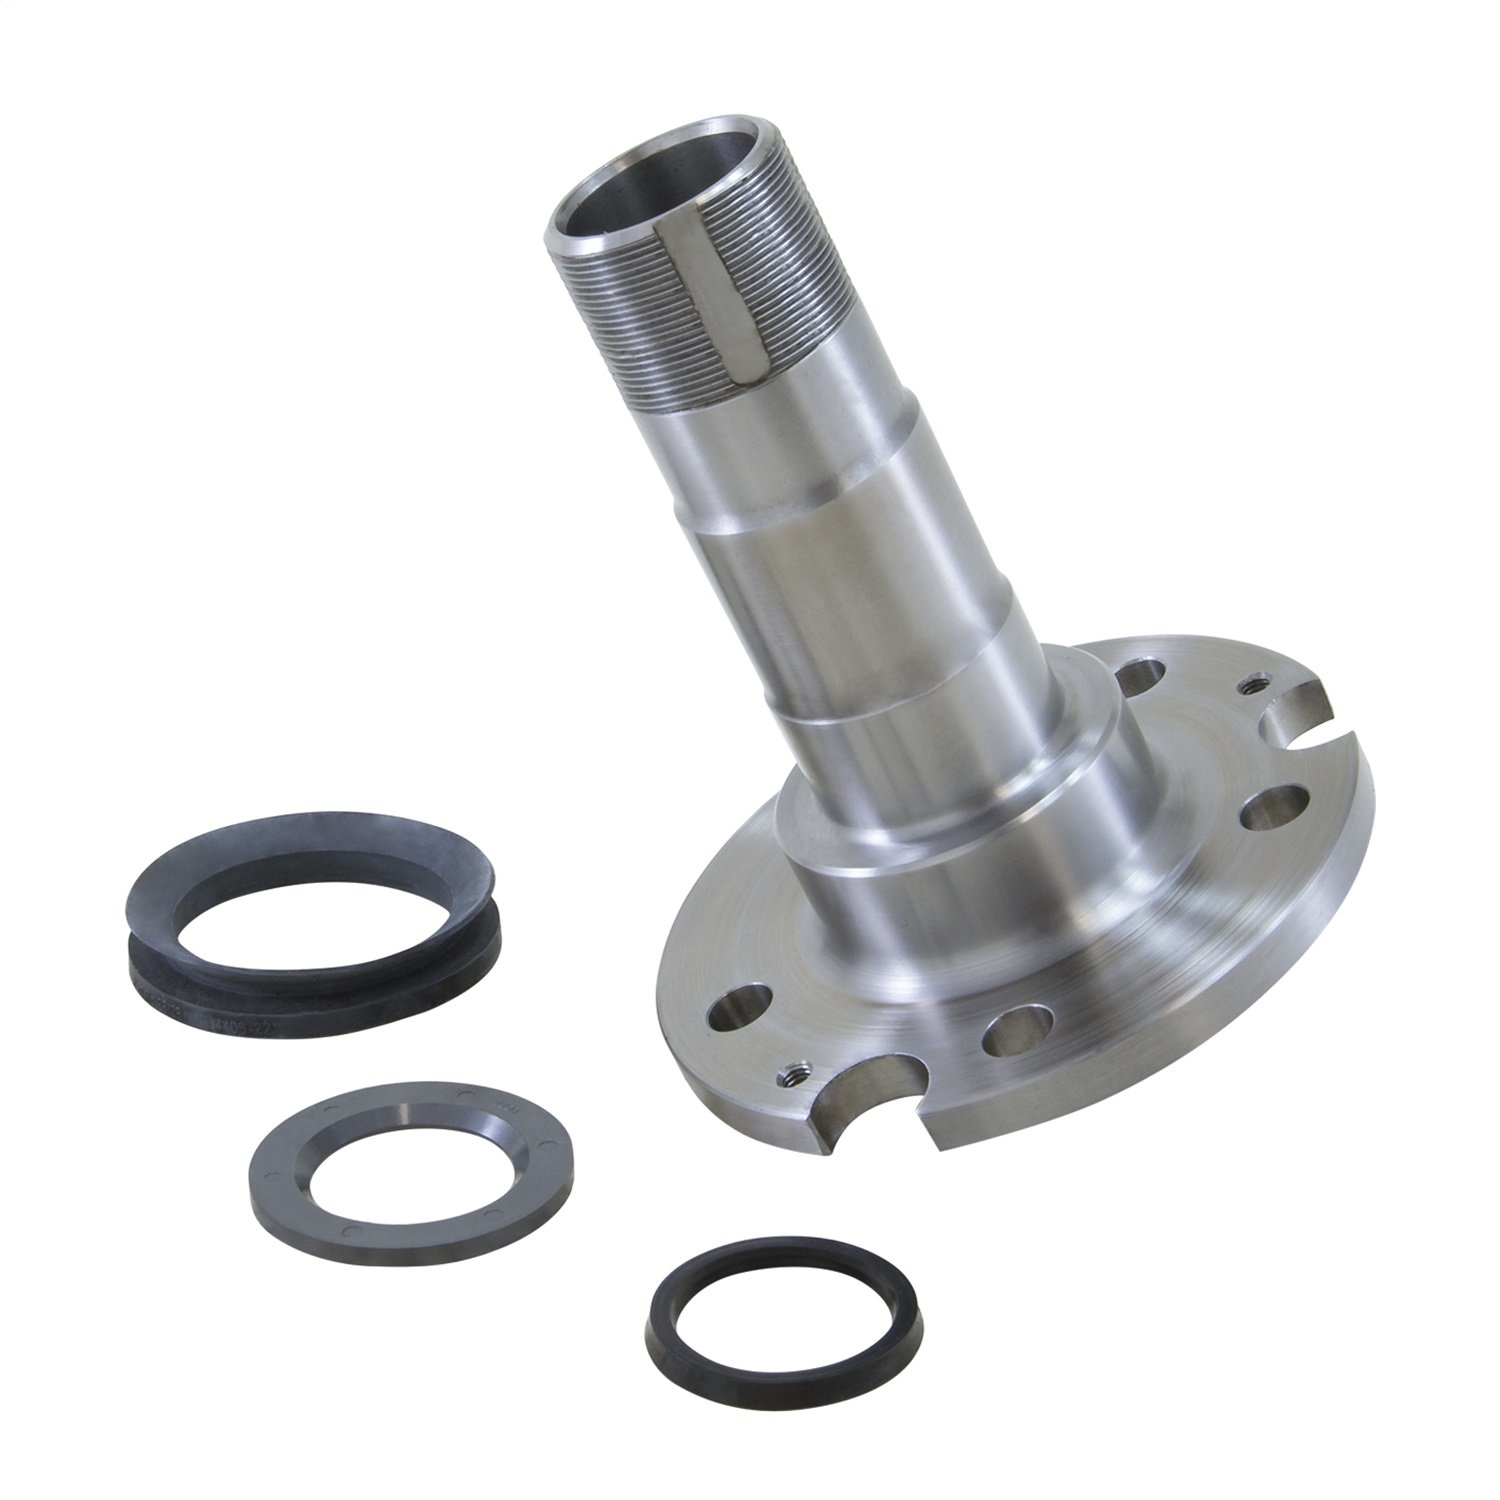 Yukon (YP SP75304) Front Replacement Spindle for Dana 44 IFS Differential with ABS by Yukon Gear (Image #1)